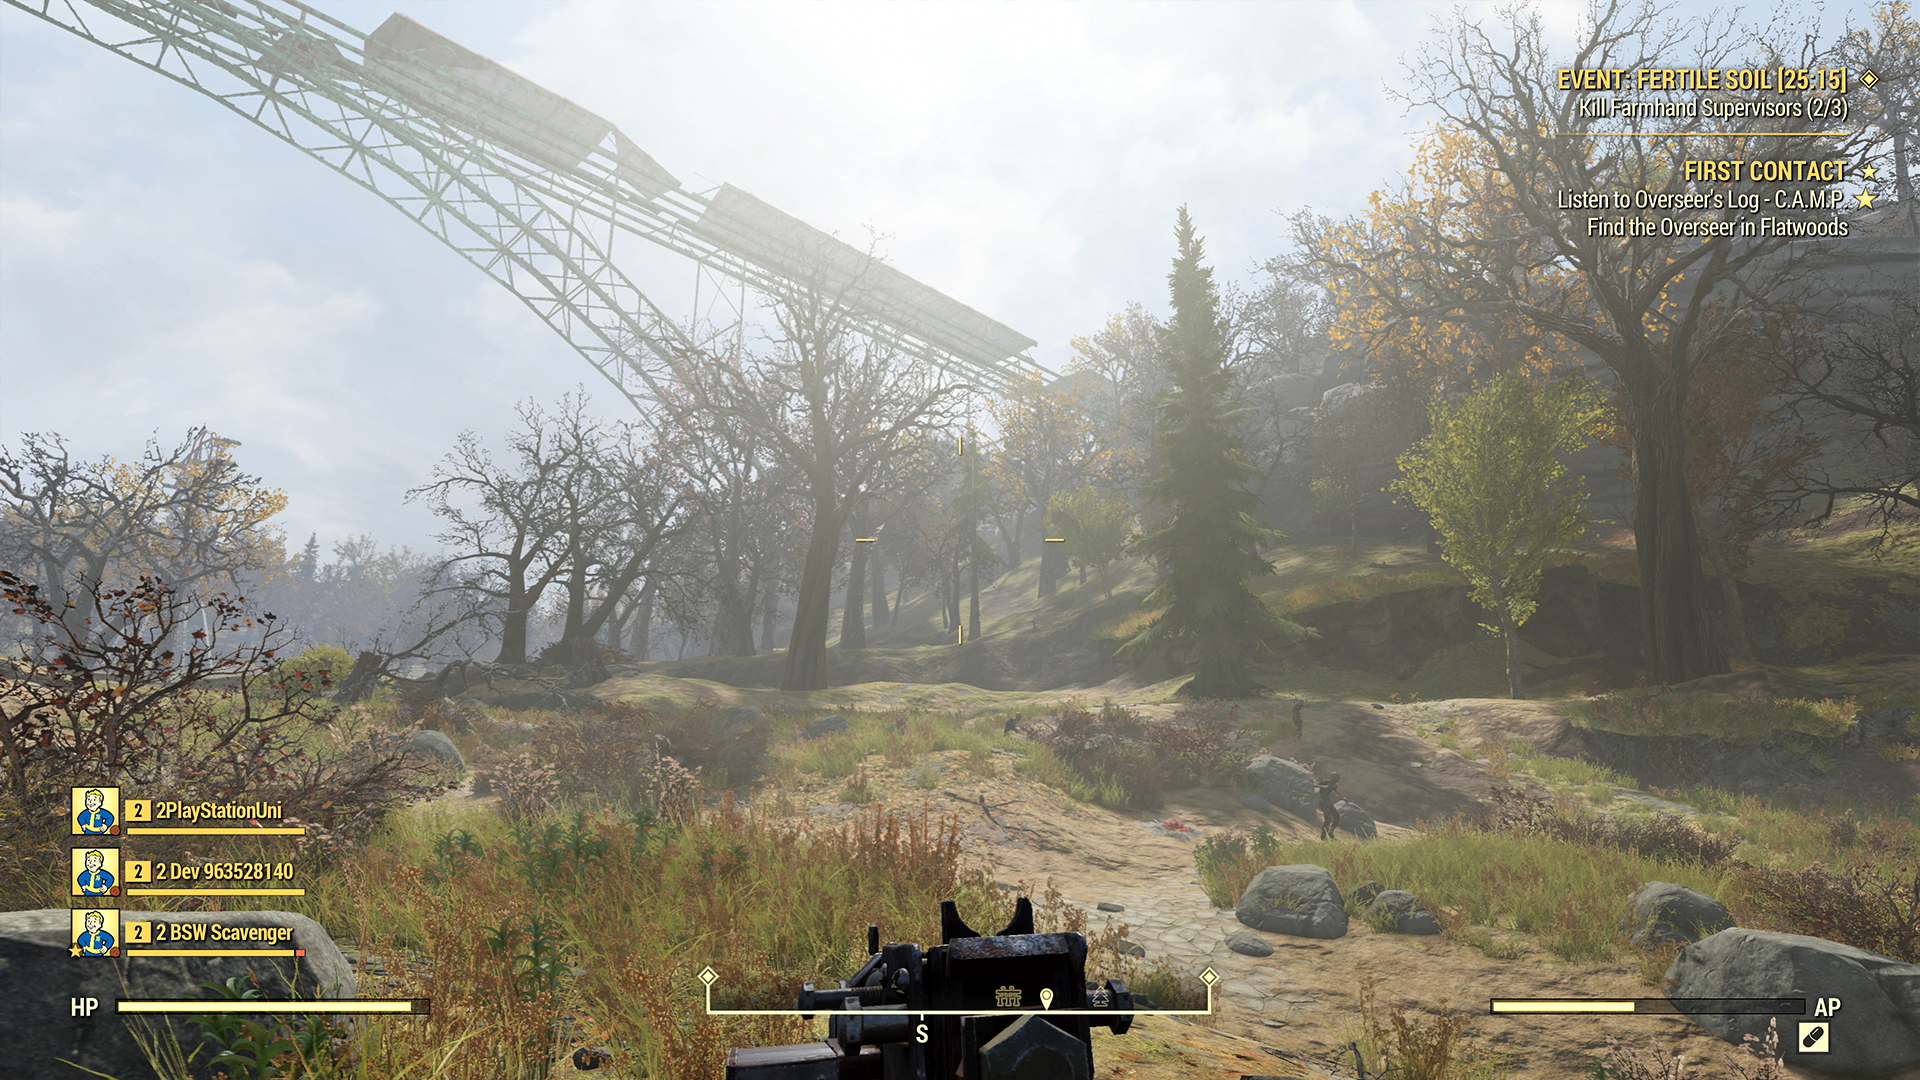 Why the Fallout 76 West Virginia Foothills Setting? We Ask